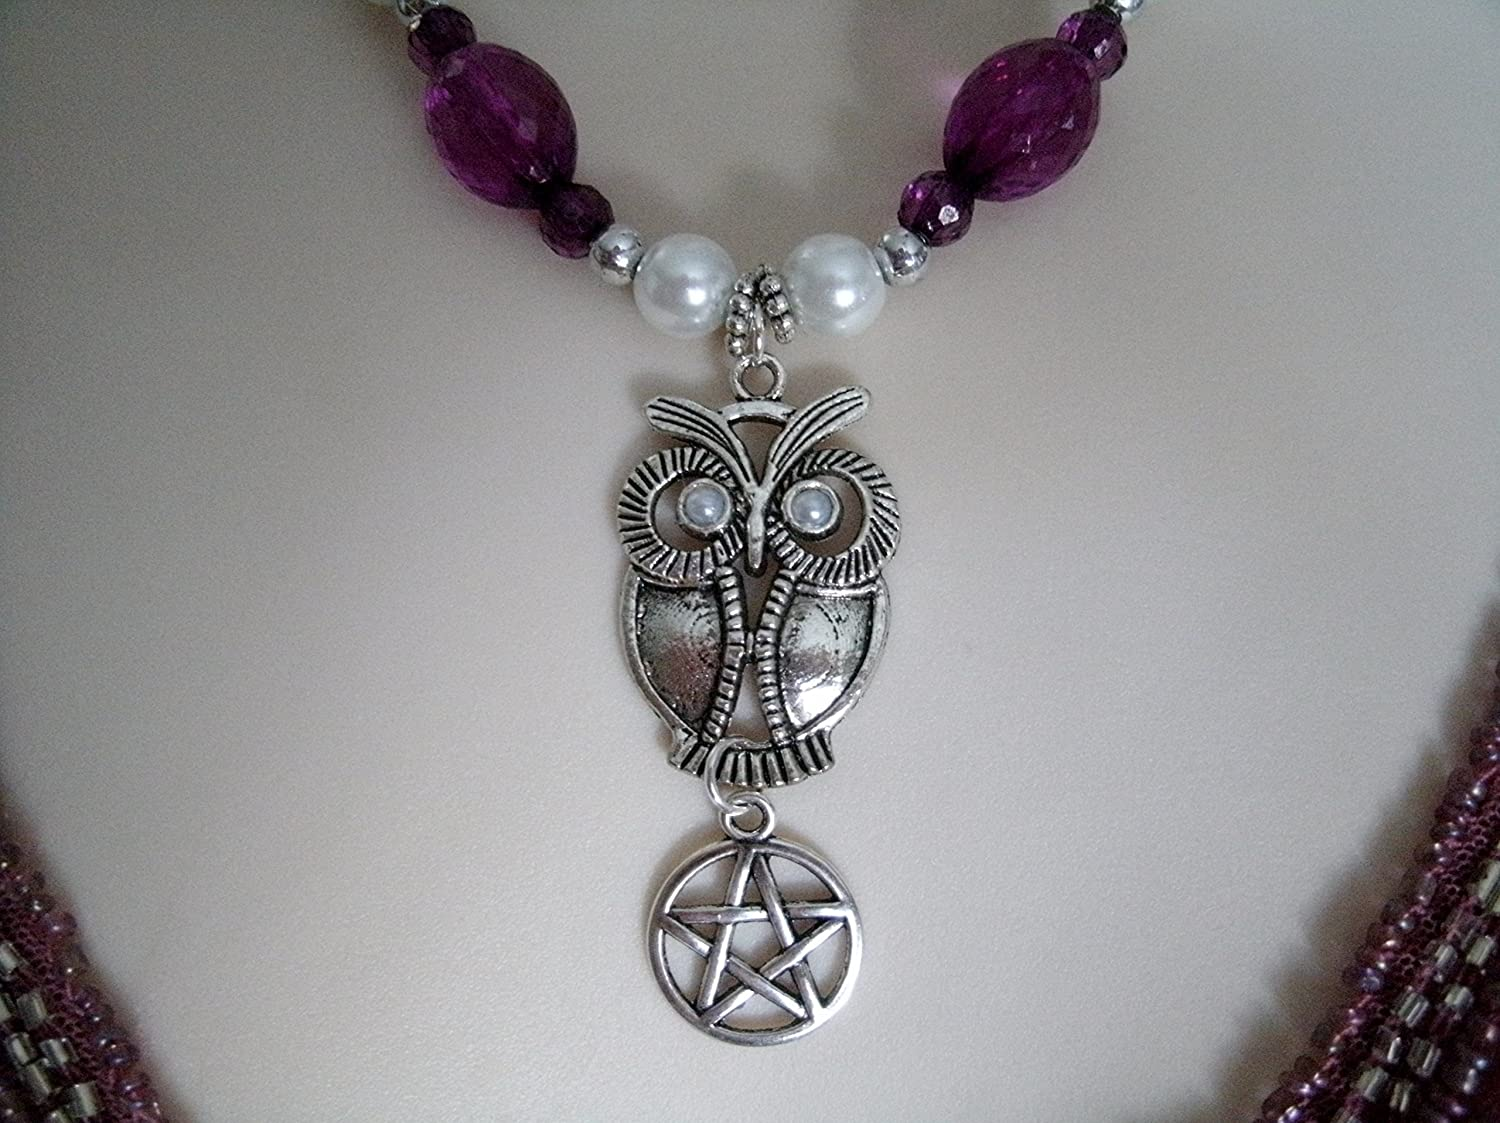 Goddess Athena Owl Pentacle Necklace, handmade jewelry, wiccan, pagan, wicca, witch, witchcraft, pentagram, magic